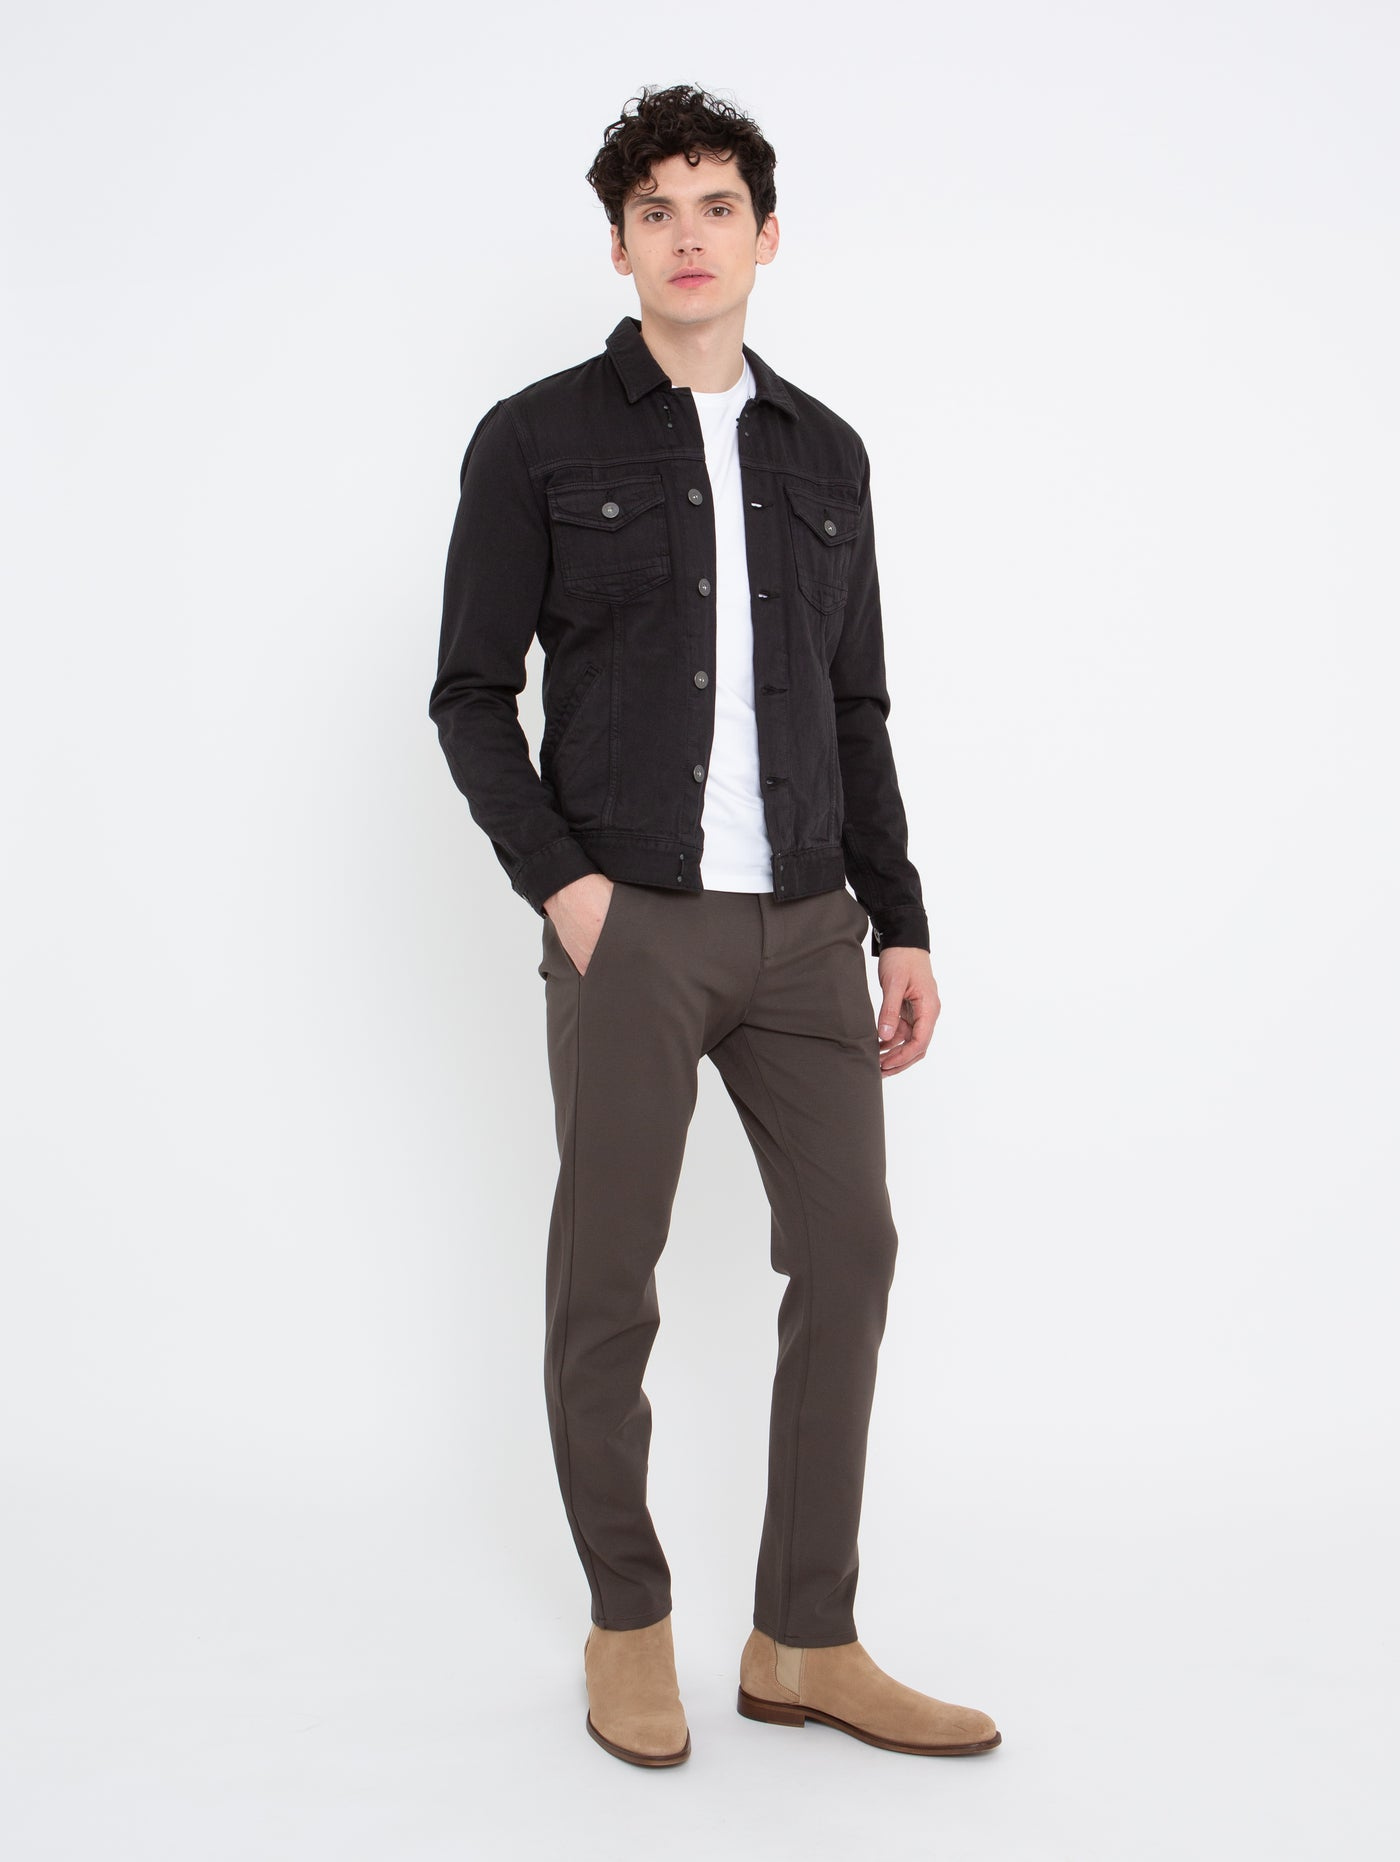 Stafford Slim Pant - Black Olive-Paige-Over the Rainbow